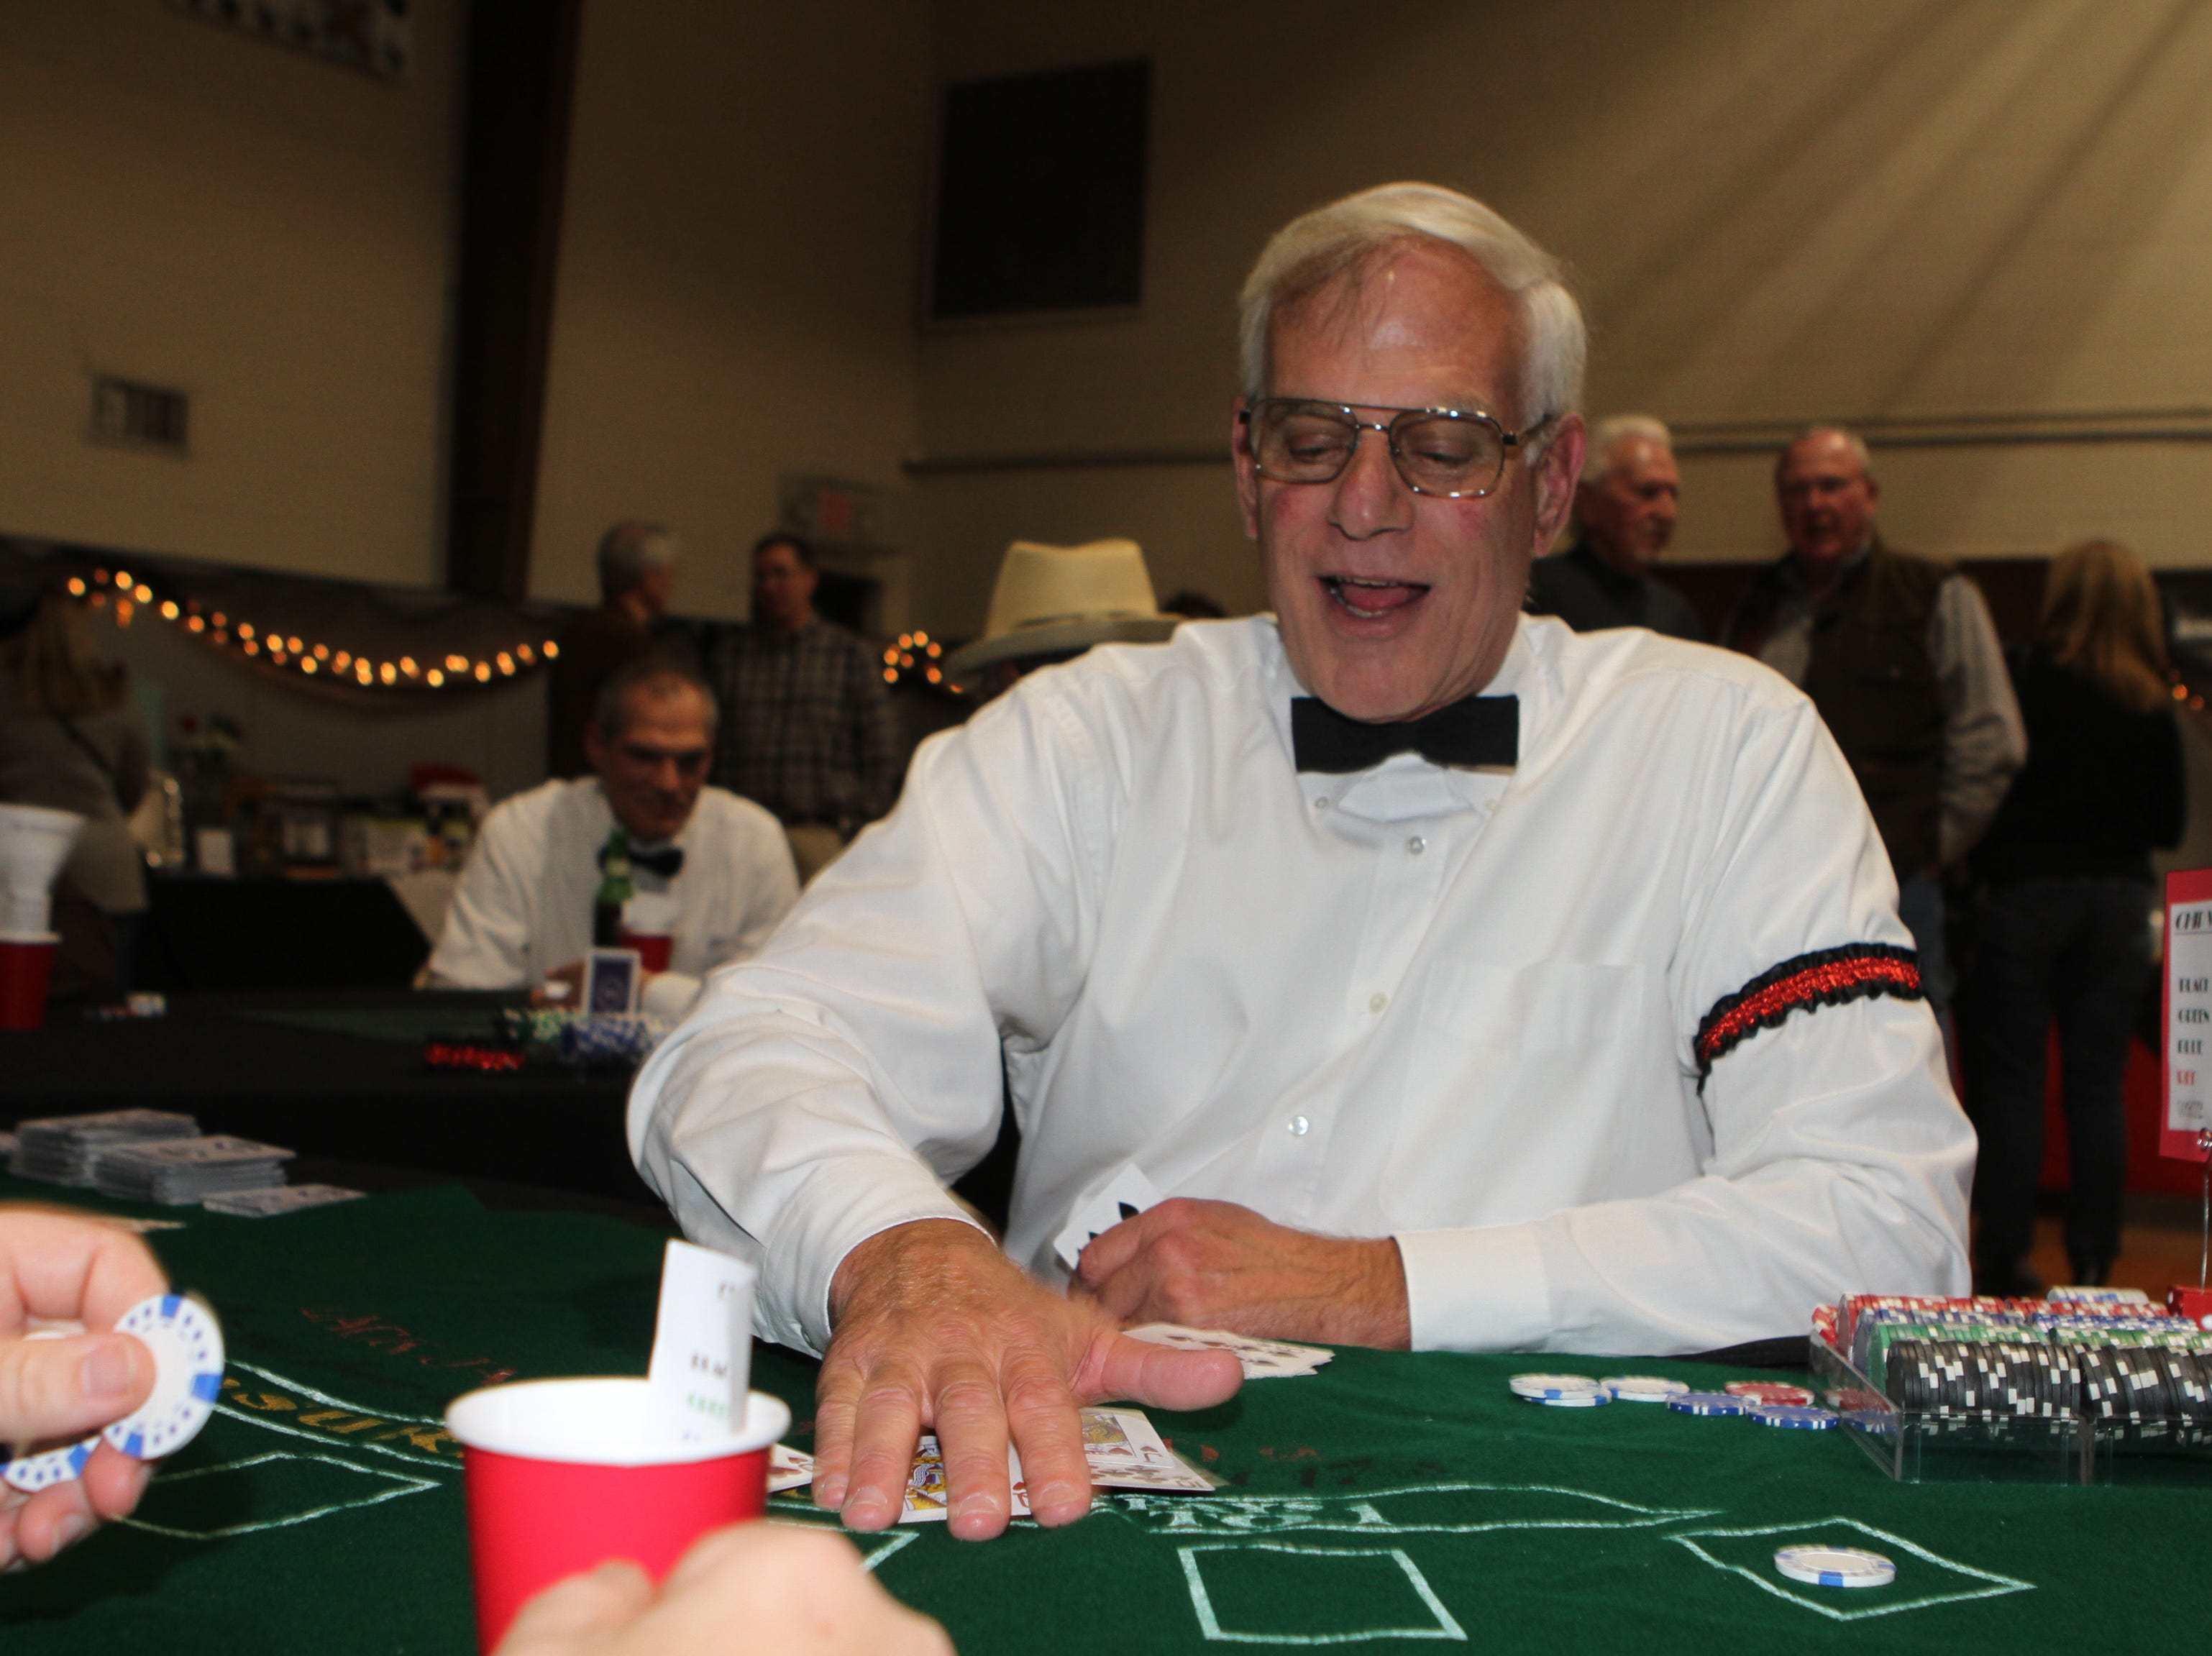 This year's Casino Night at Immaculate Conception School had hundreds enjoying hors d'oeuvres, casino games, music, dancing and a silent auction.